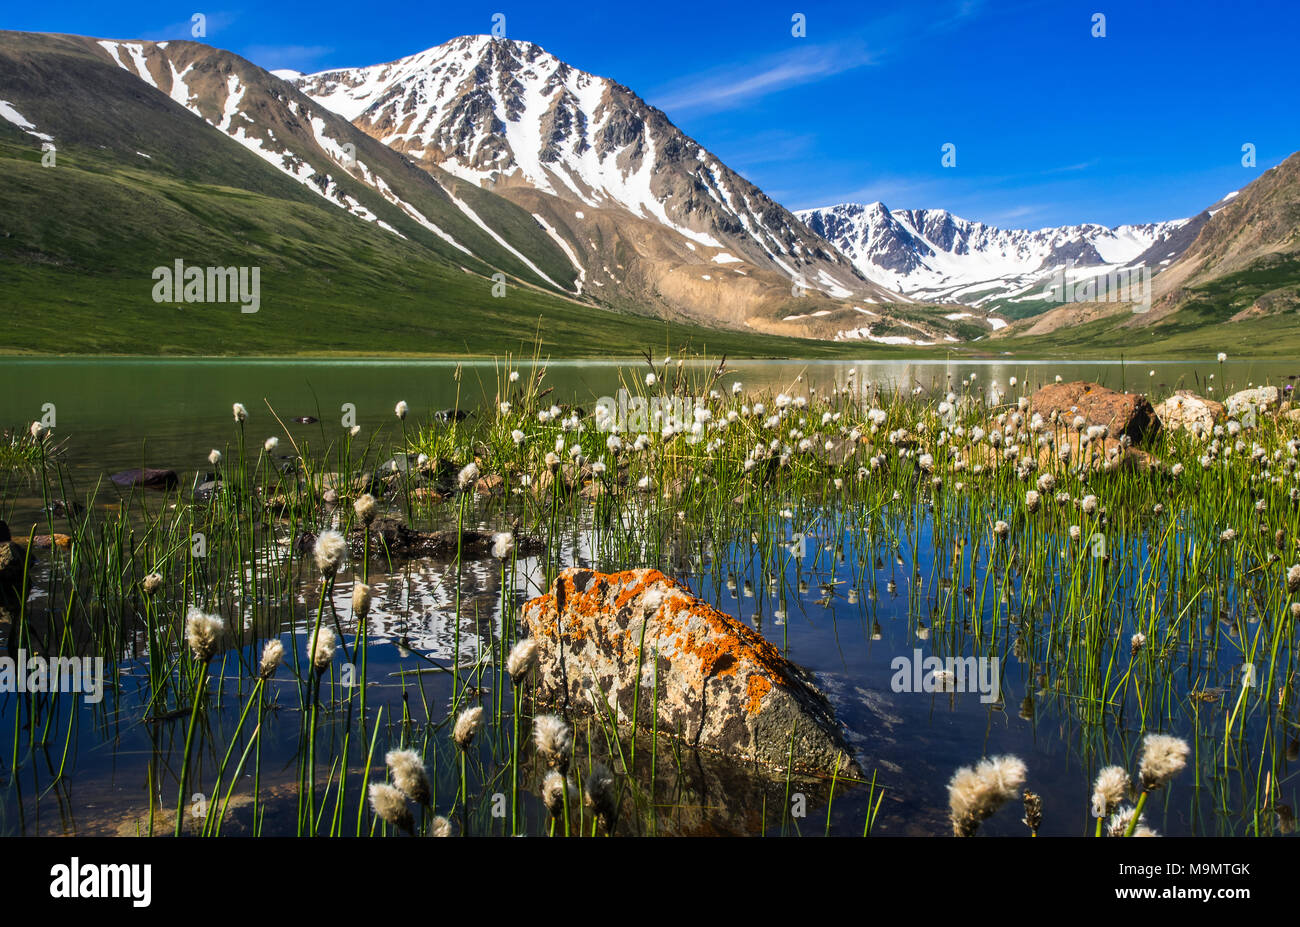 Blooming vegetation, Cottongrass (Eriophorum) and lake, snow-covered Altai mountains in the back, Mongolia - Stock Image